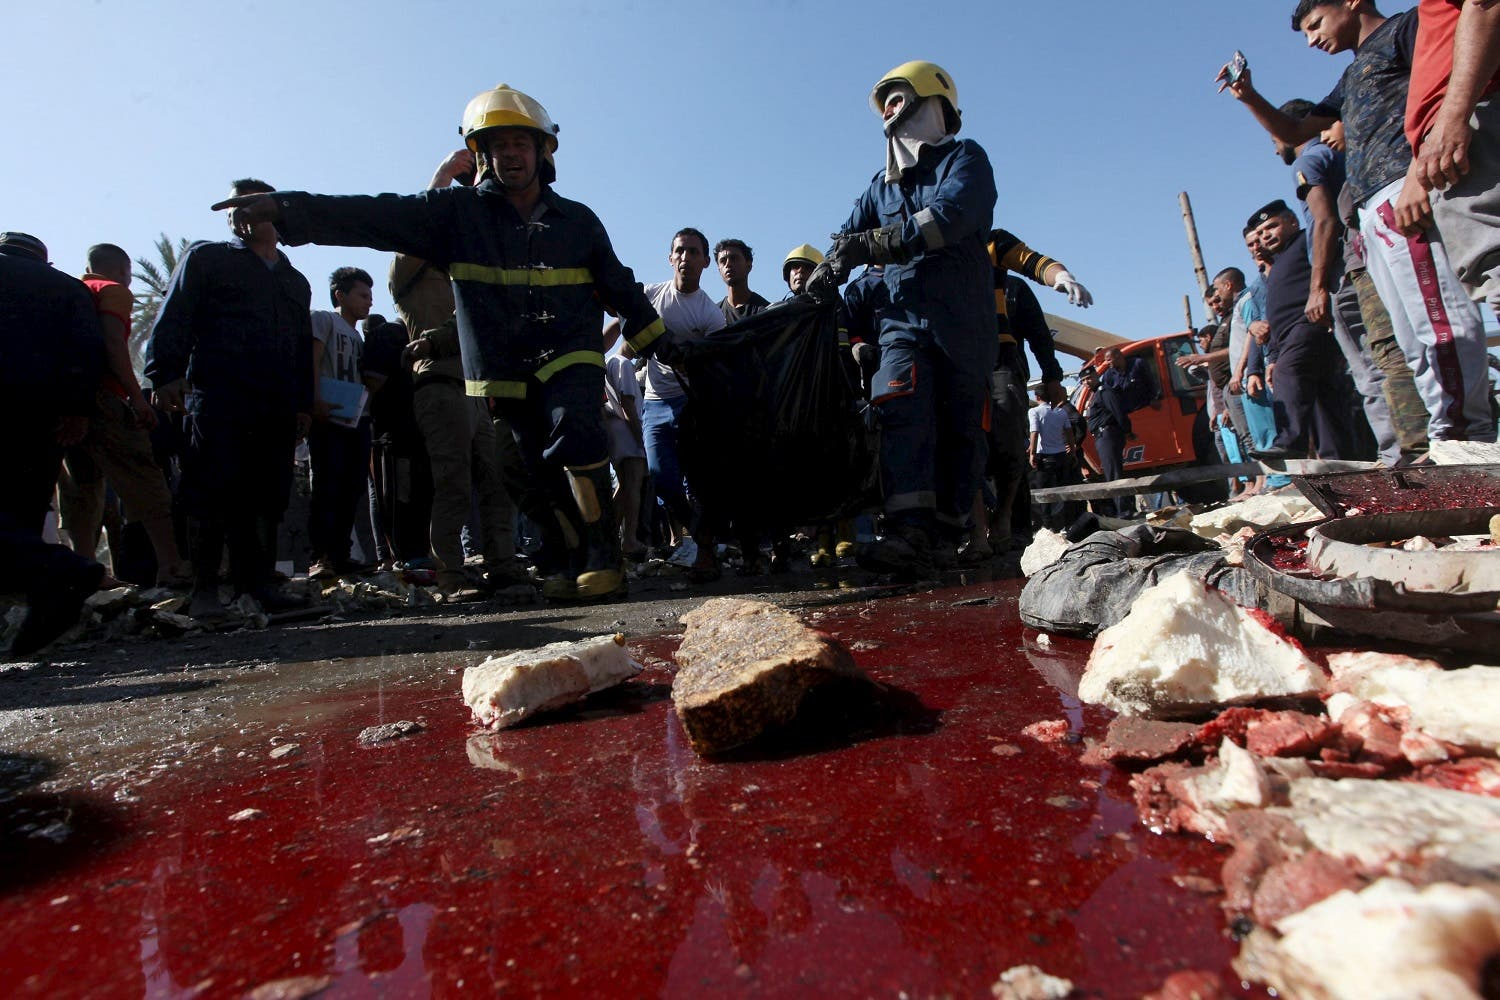 Blood is seen on the ground at the site of a bomb attack at a checkpoint in the city of Hilla, south of Baghdad, March 6, 2016. REUTERS/Alaa Al-Marjani